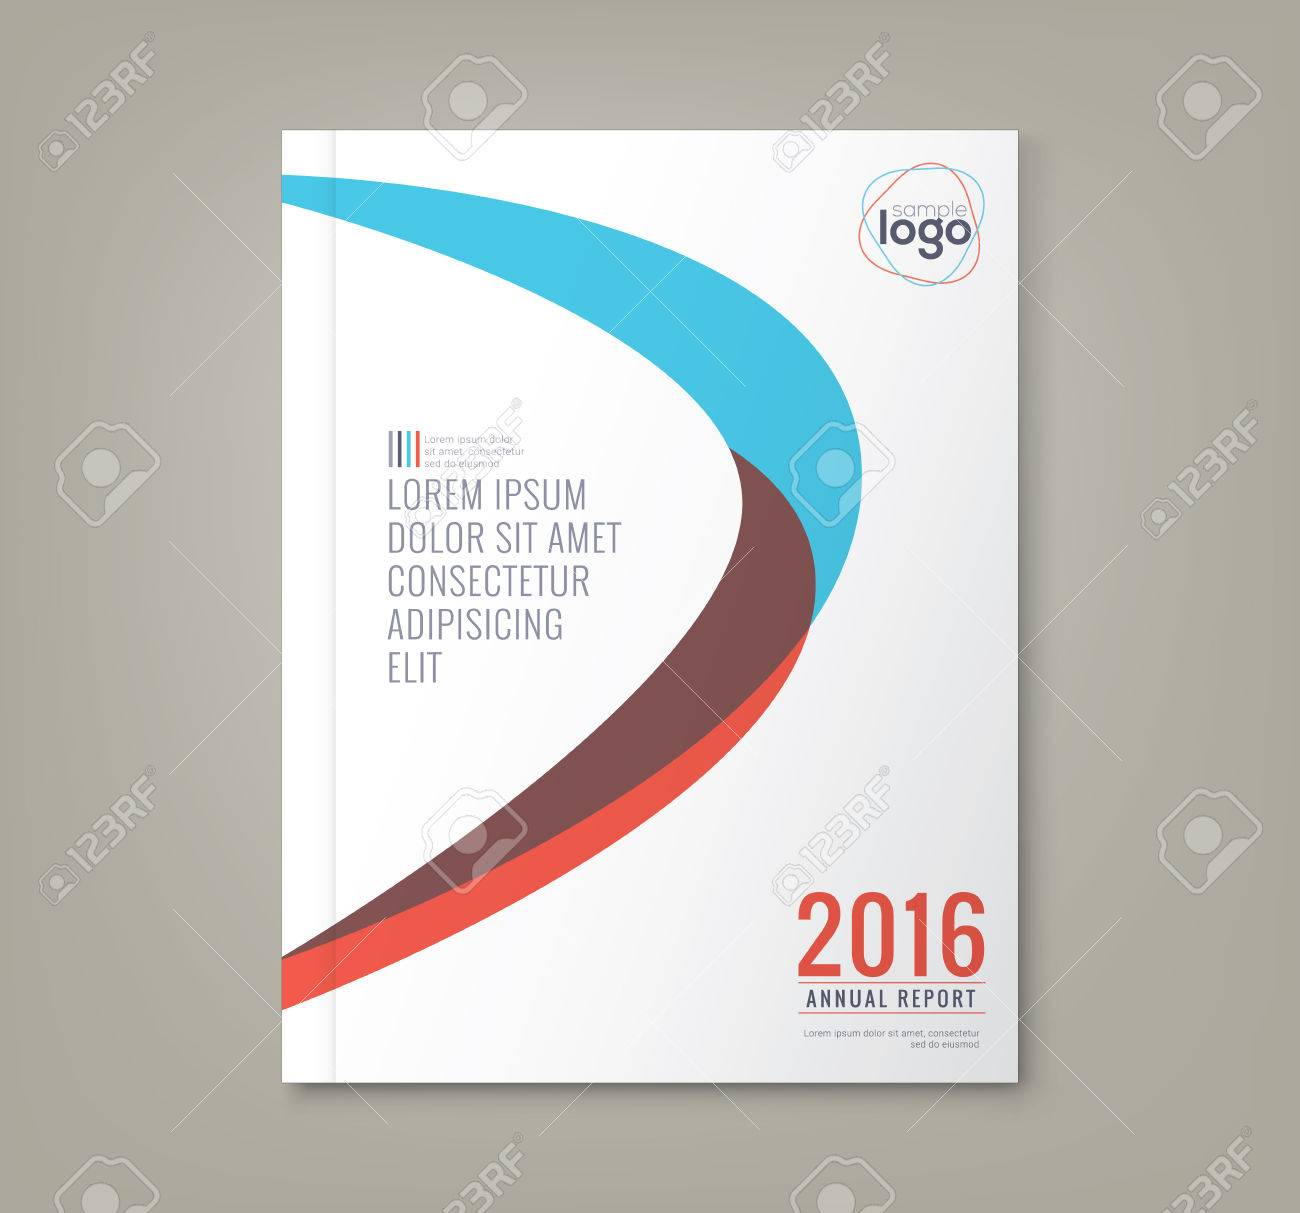 Abstract Minimal Curved Shapes Design Background Template For Business  Annual Report Book Cover Brochure Flyer Poster  Business Annual Report Template